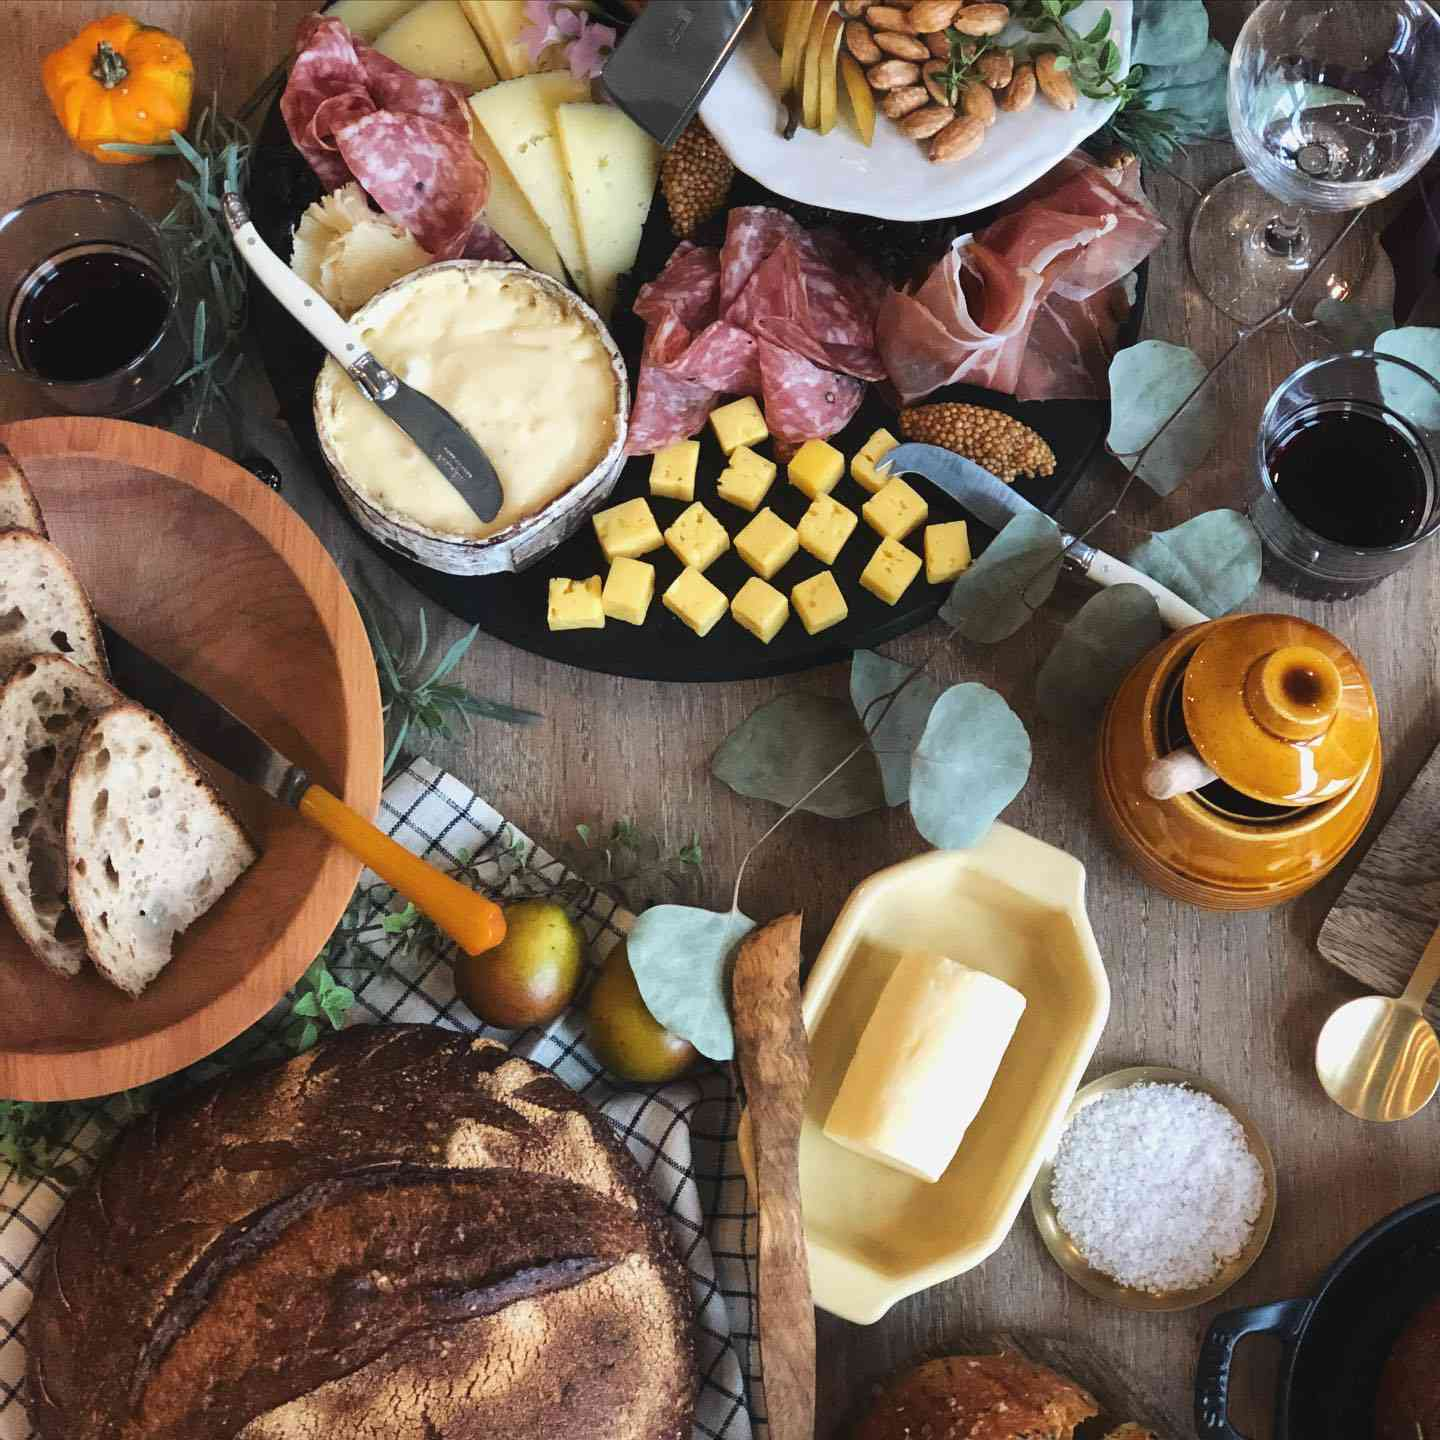 A table filled with charcuterie